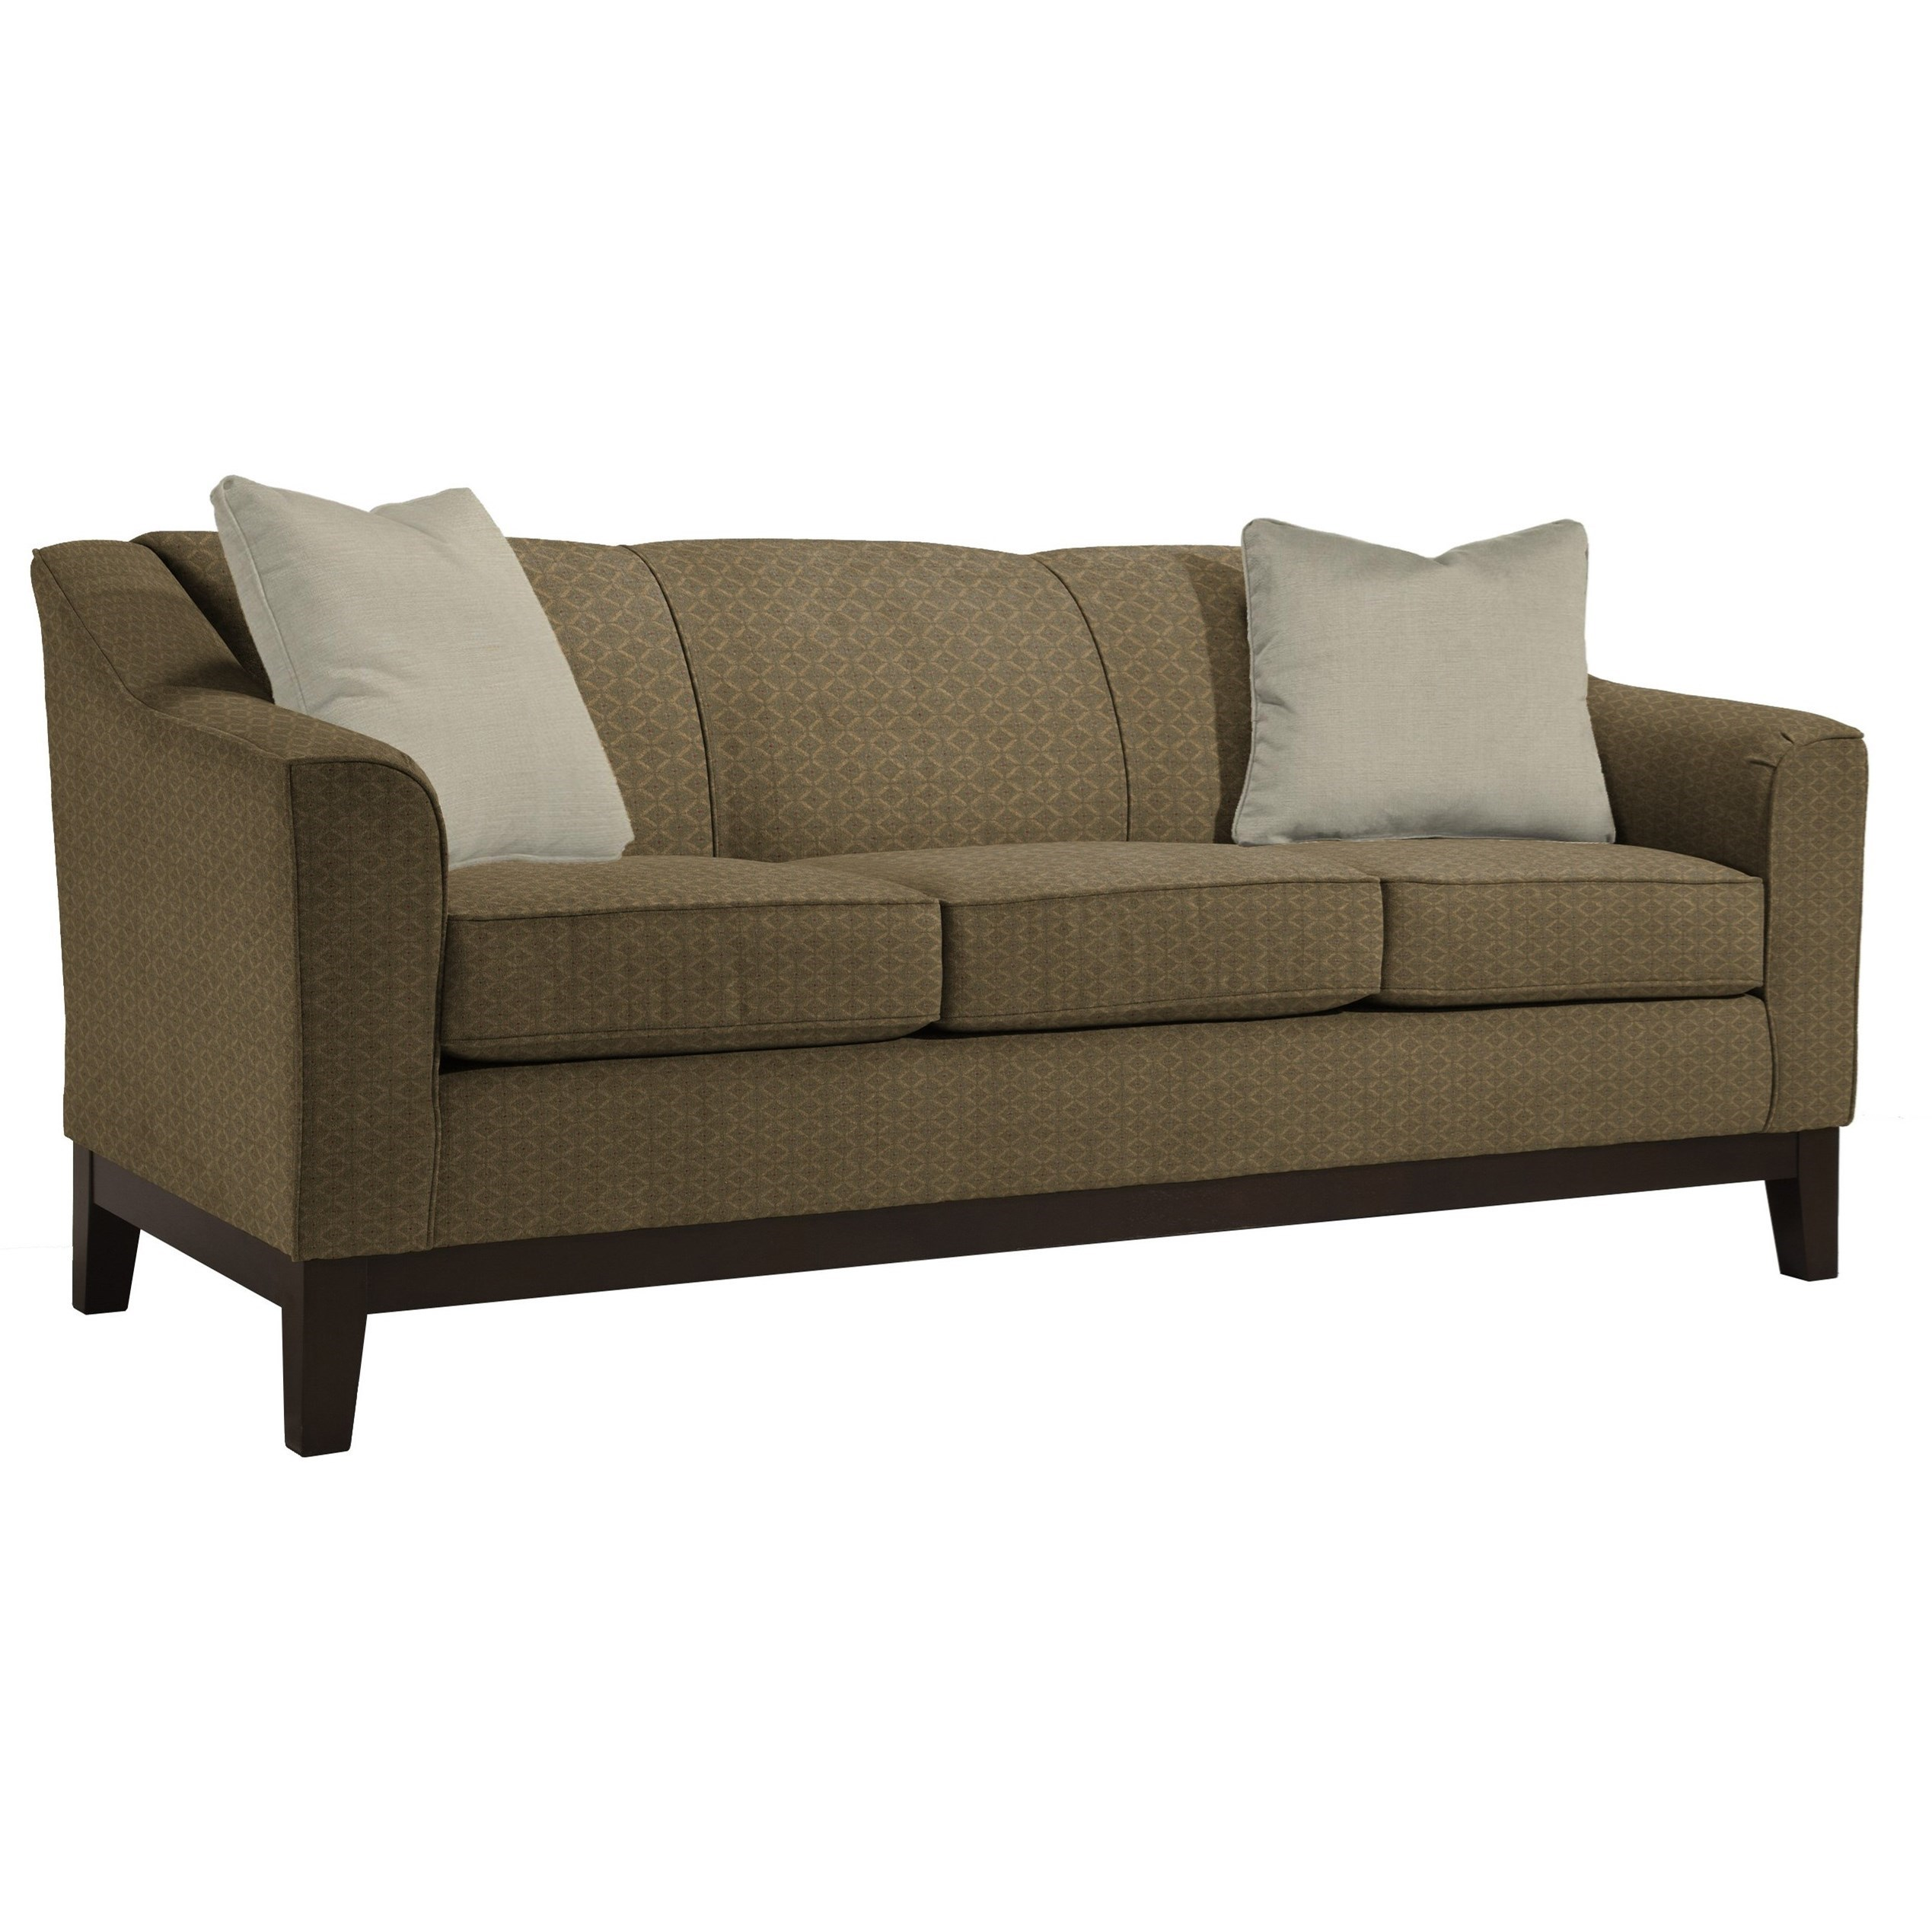 Best Home Furnishings Emeline Customizable Sofa - Item Number: 206338137-18021